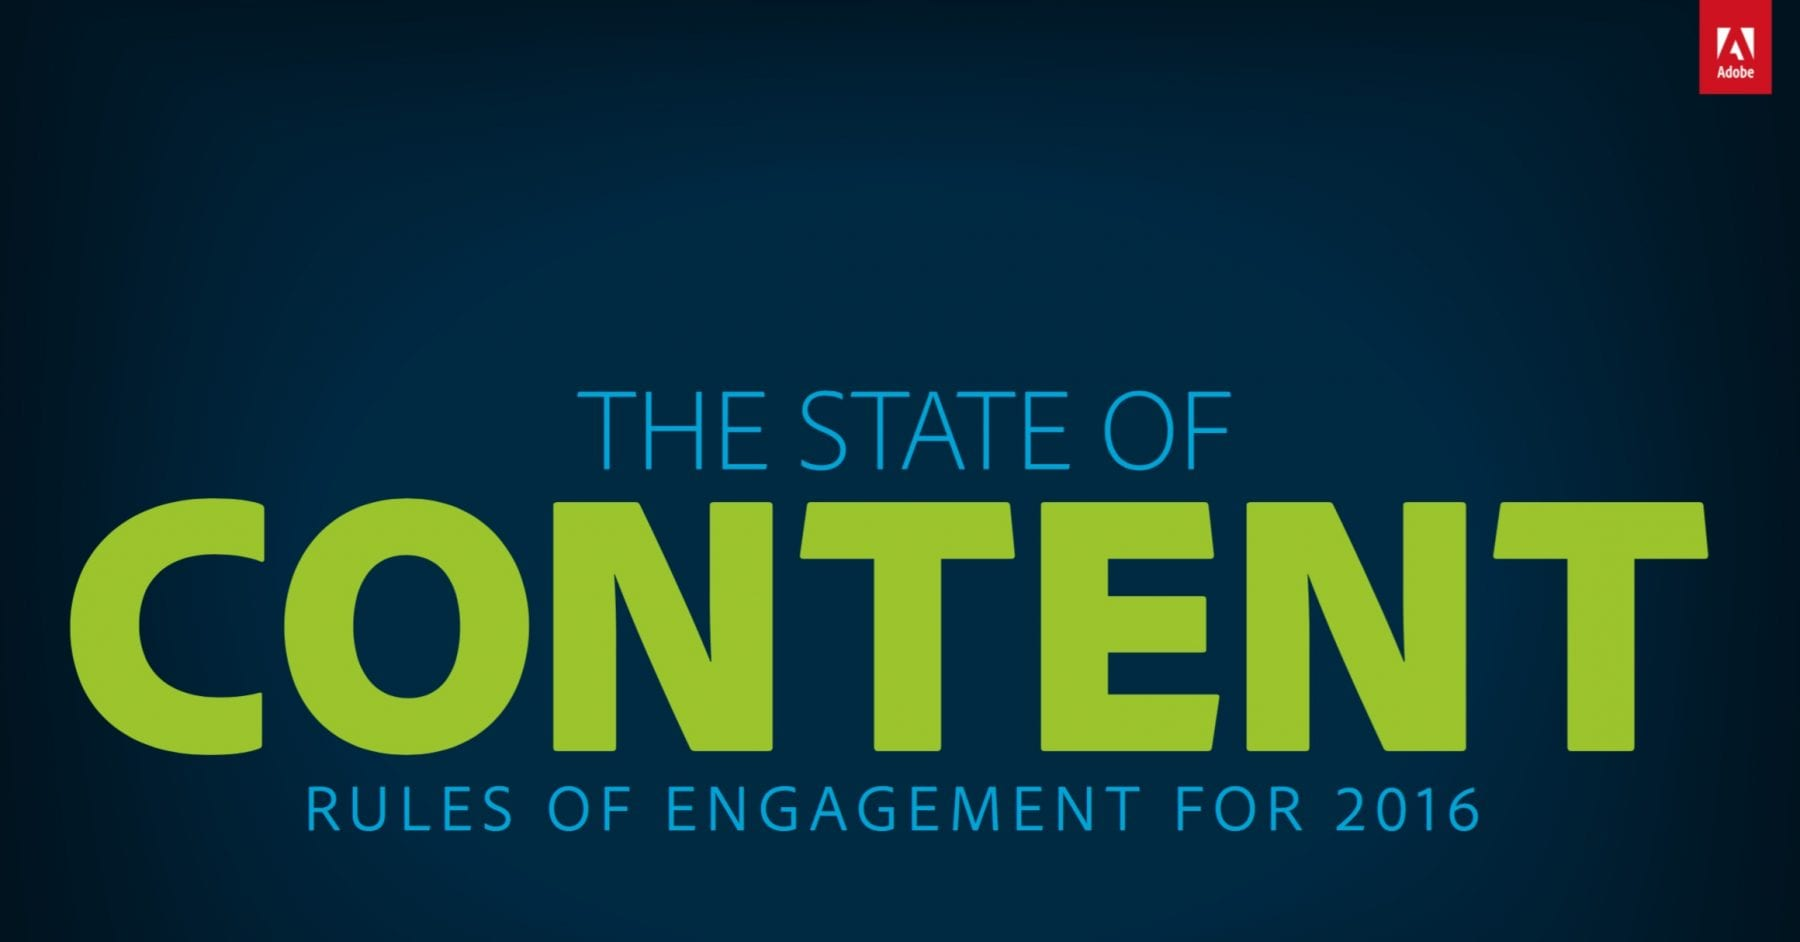 What do users want in content?